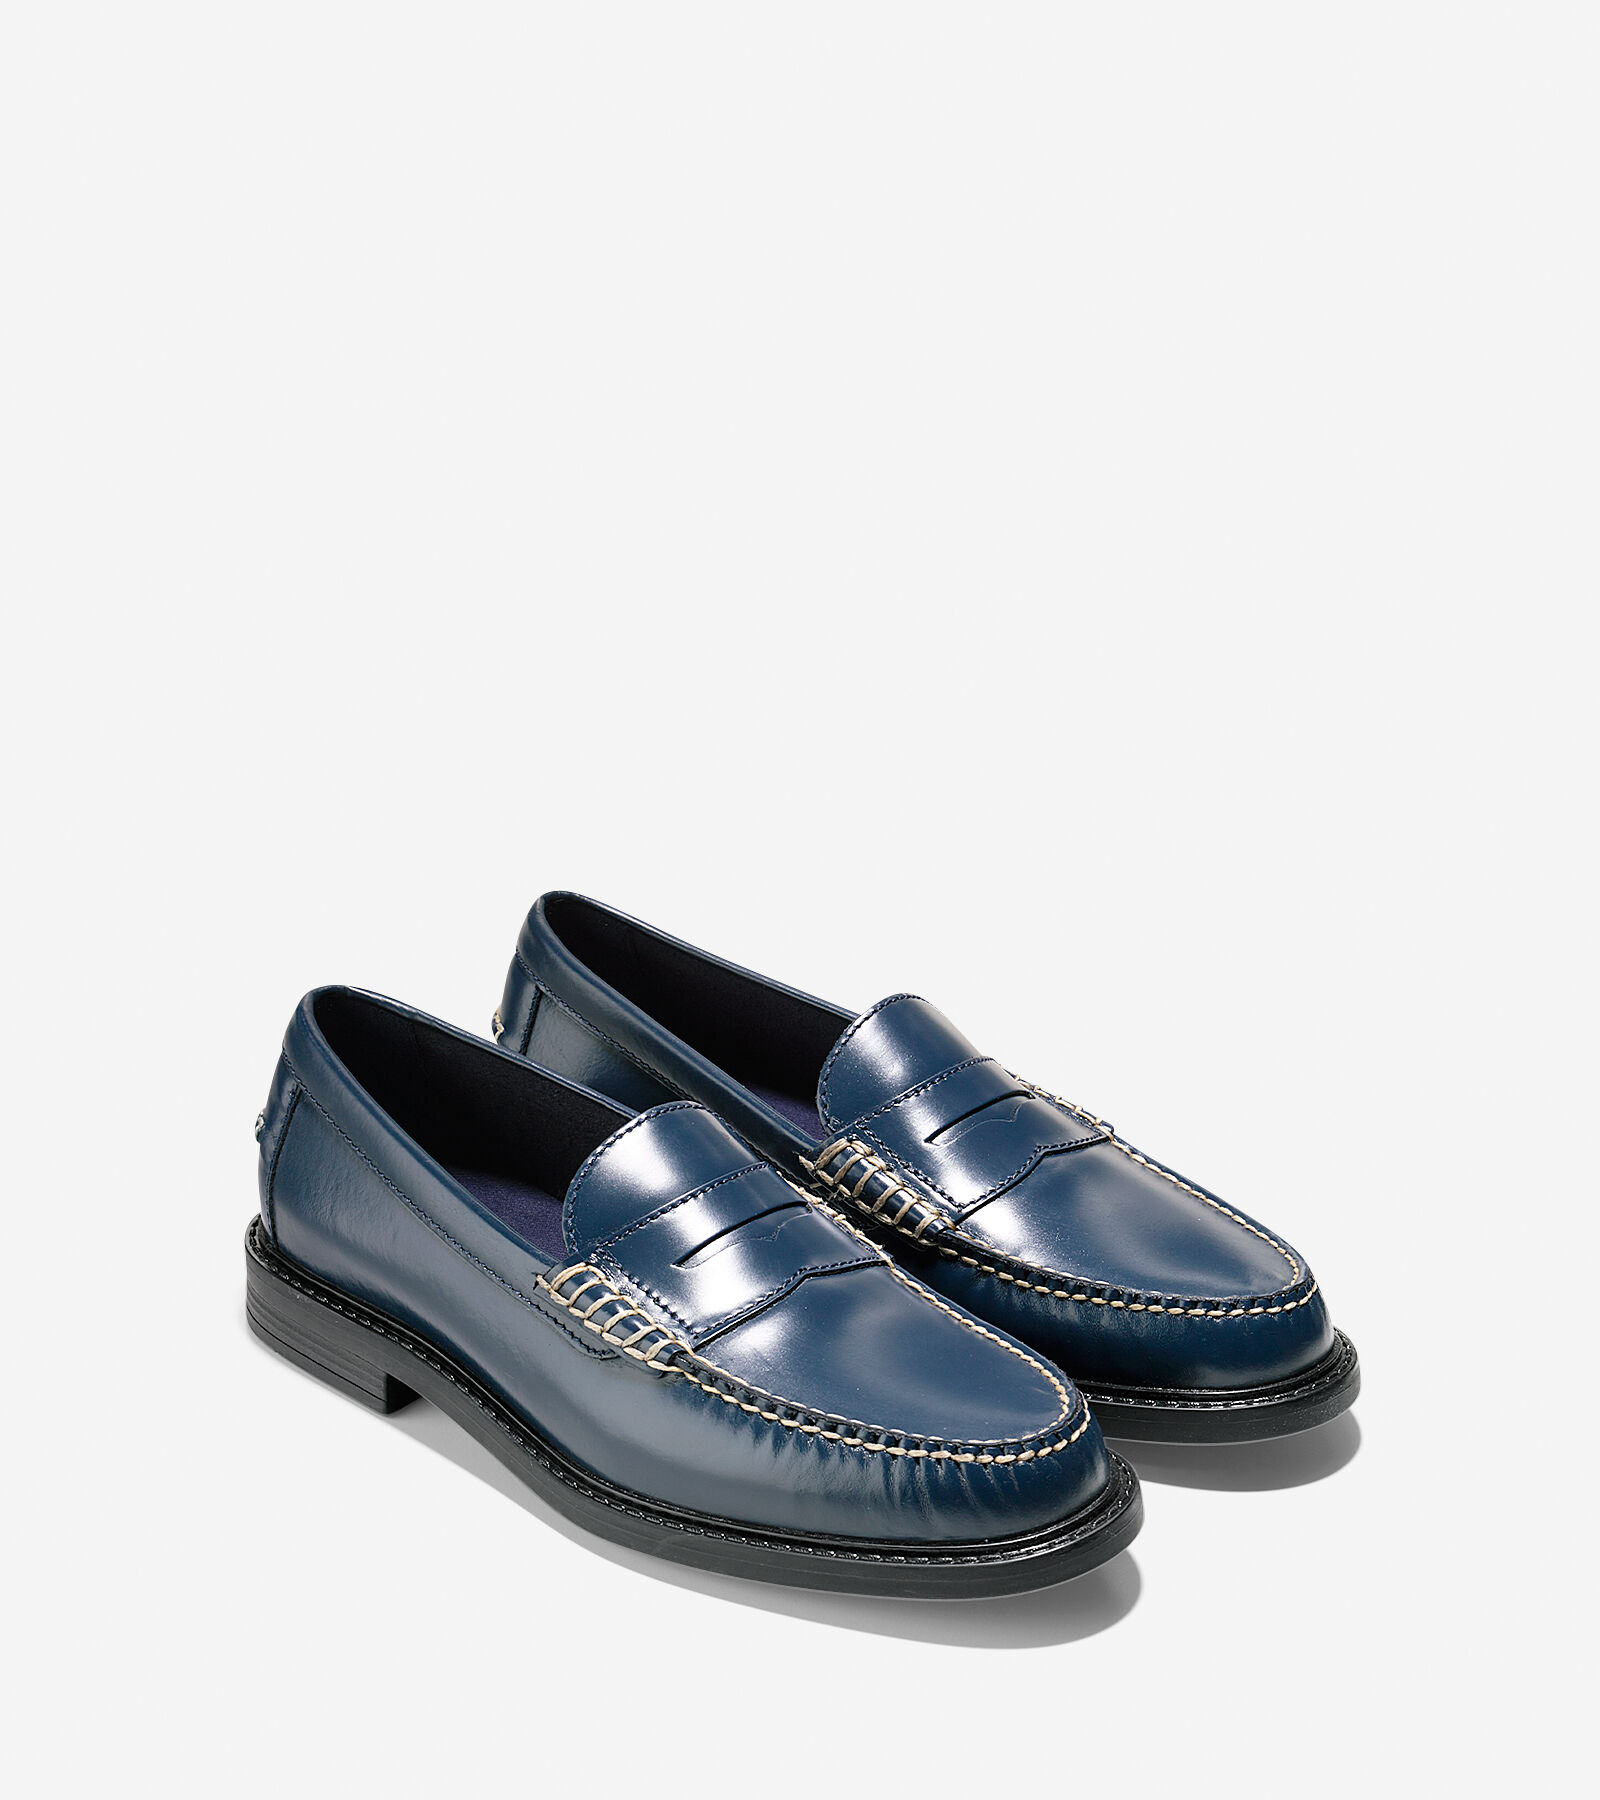 Mens Pinch Campus Penny Loafer  Mens Pinch Campus Penny Loafer  colehaan